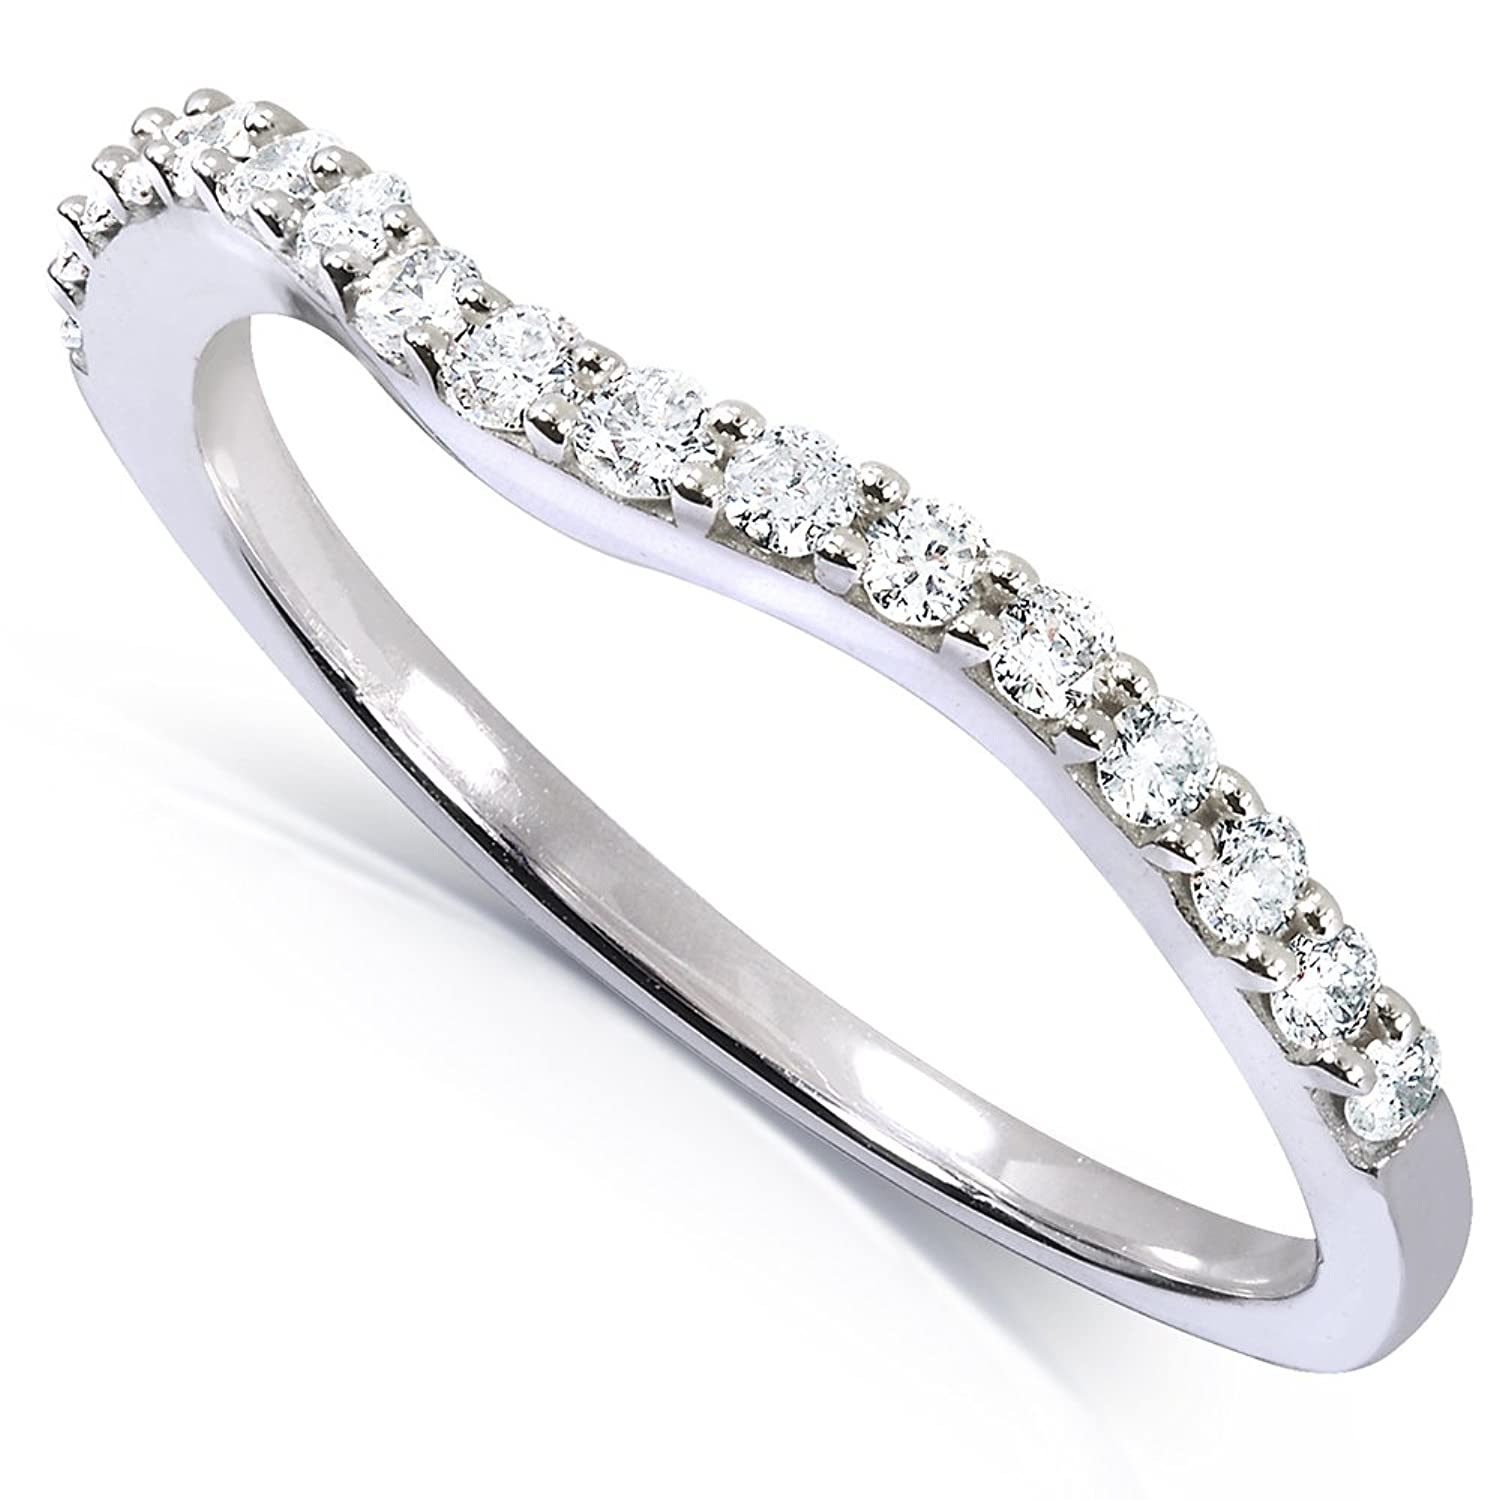 co a wedding peretti with curved rings ring in band m elsa diamond ed platinum op jewelry tiffany usm